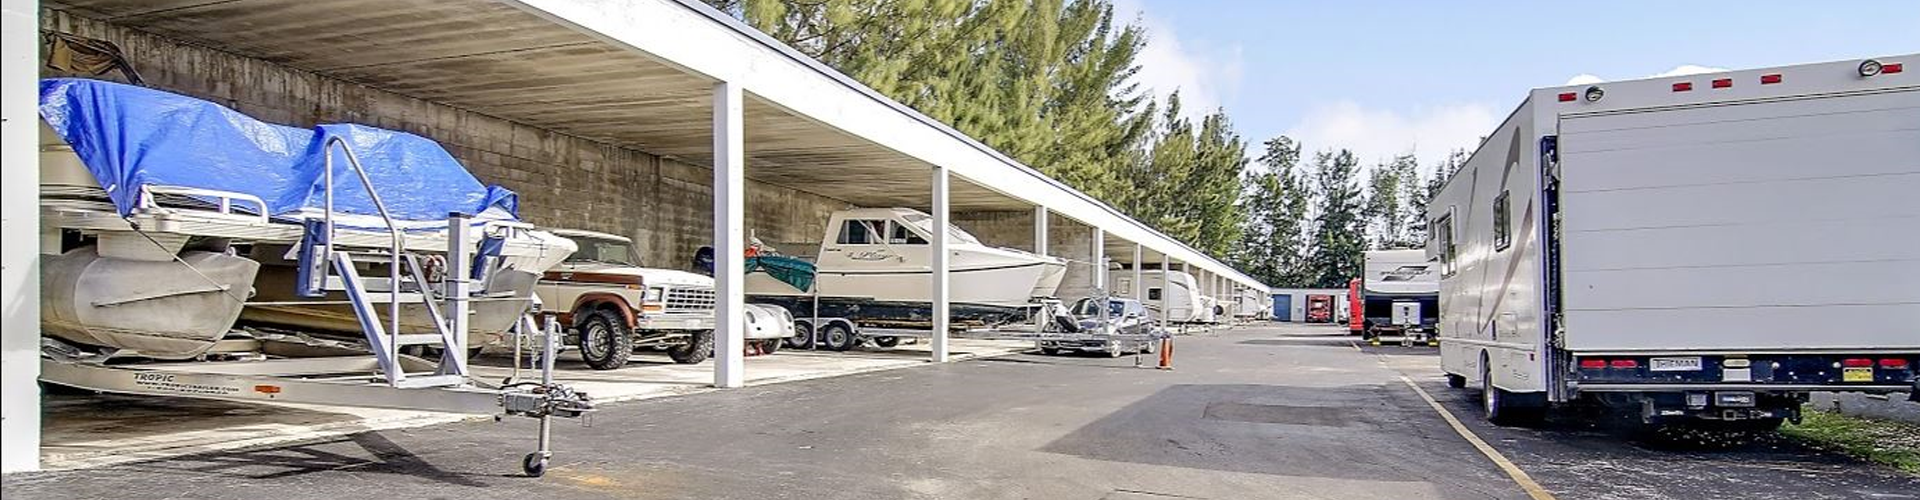 Hallandale Beach FL Storage